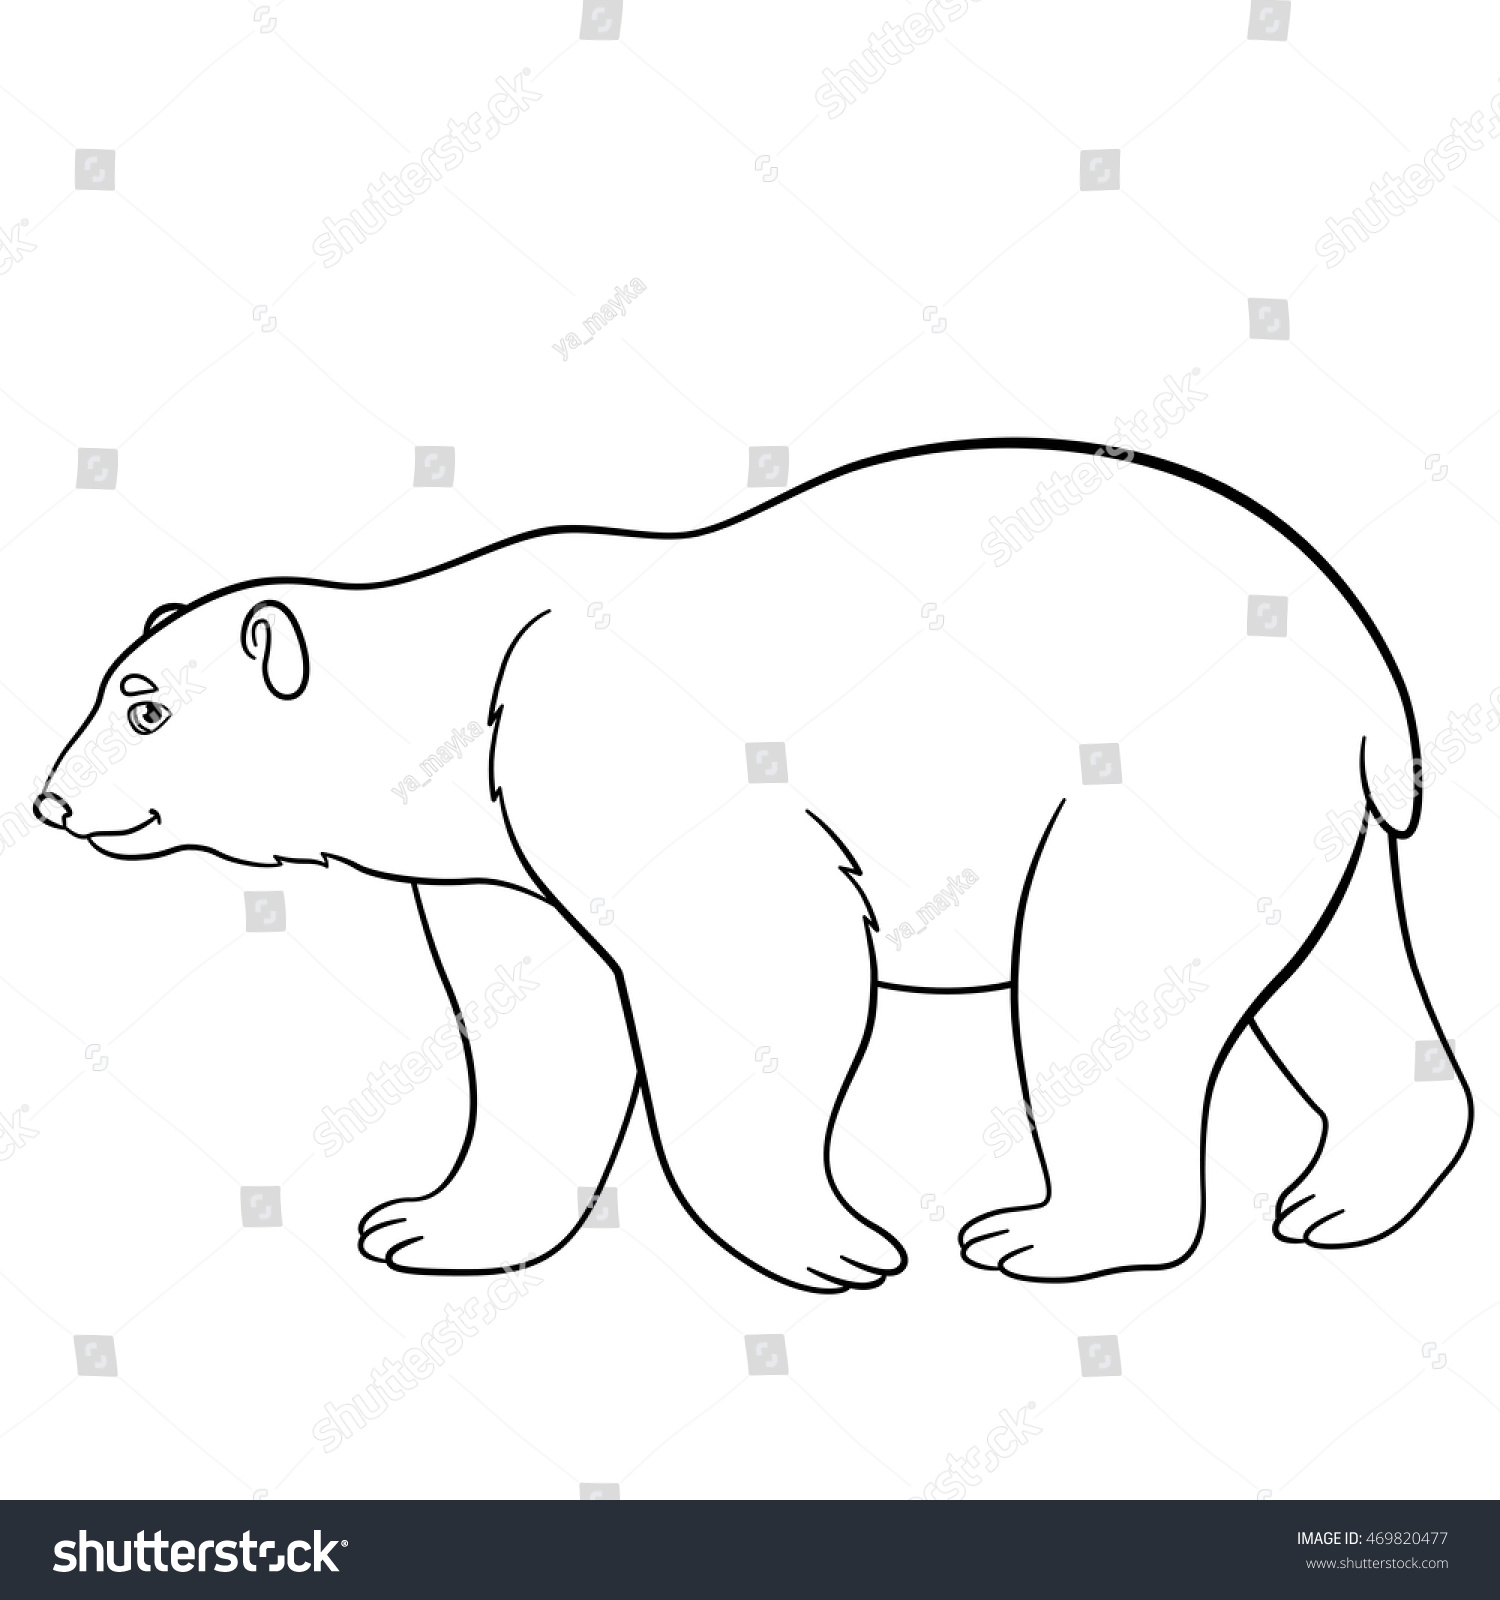 Coloring pages. Cute polar bear walks and smiles. | EZ Canvas